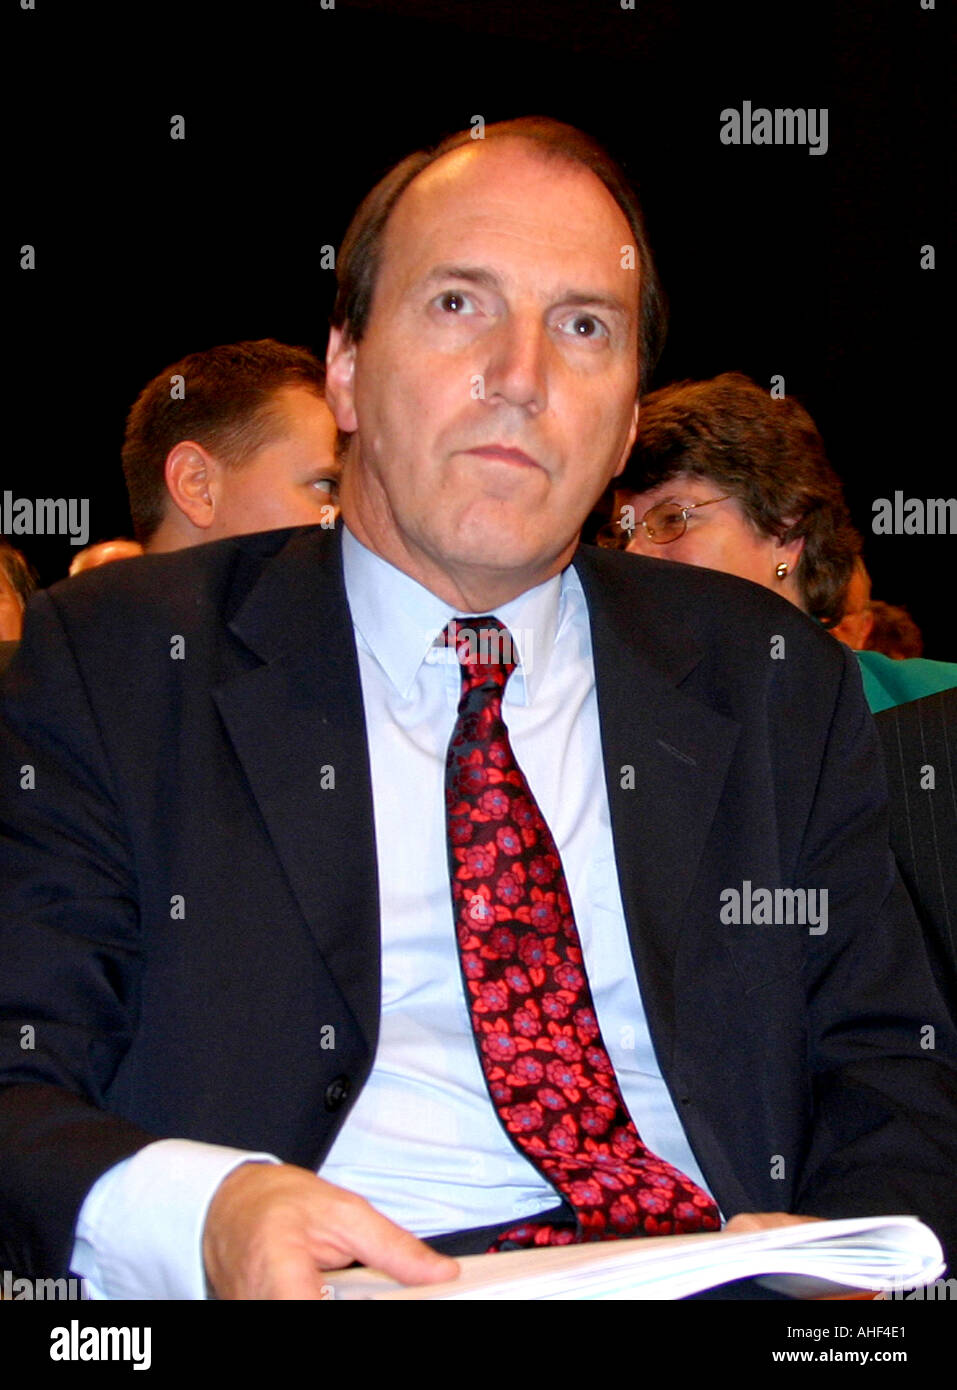 Simon Hughes Lib Dem MP for Southwark North and Bermondsey Portrait Lib Dem Conf Brighton Sept 2003  - Stock Image